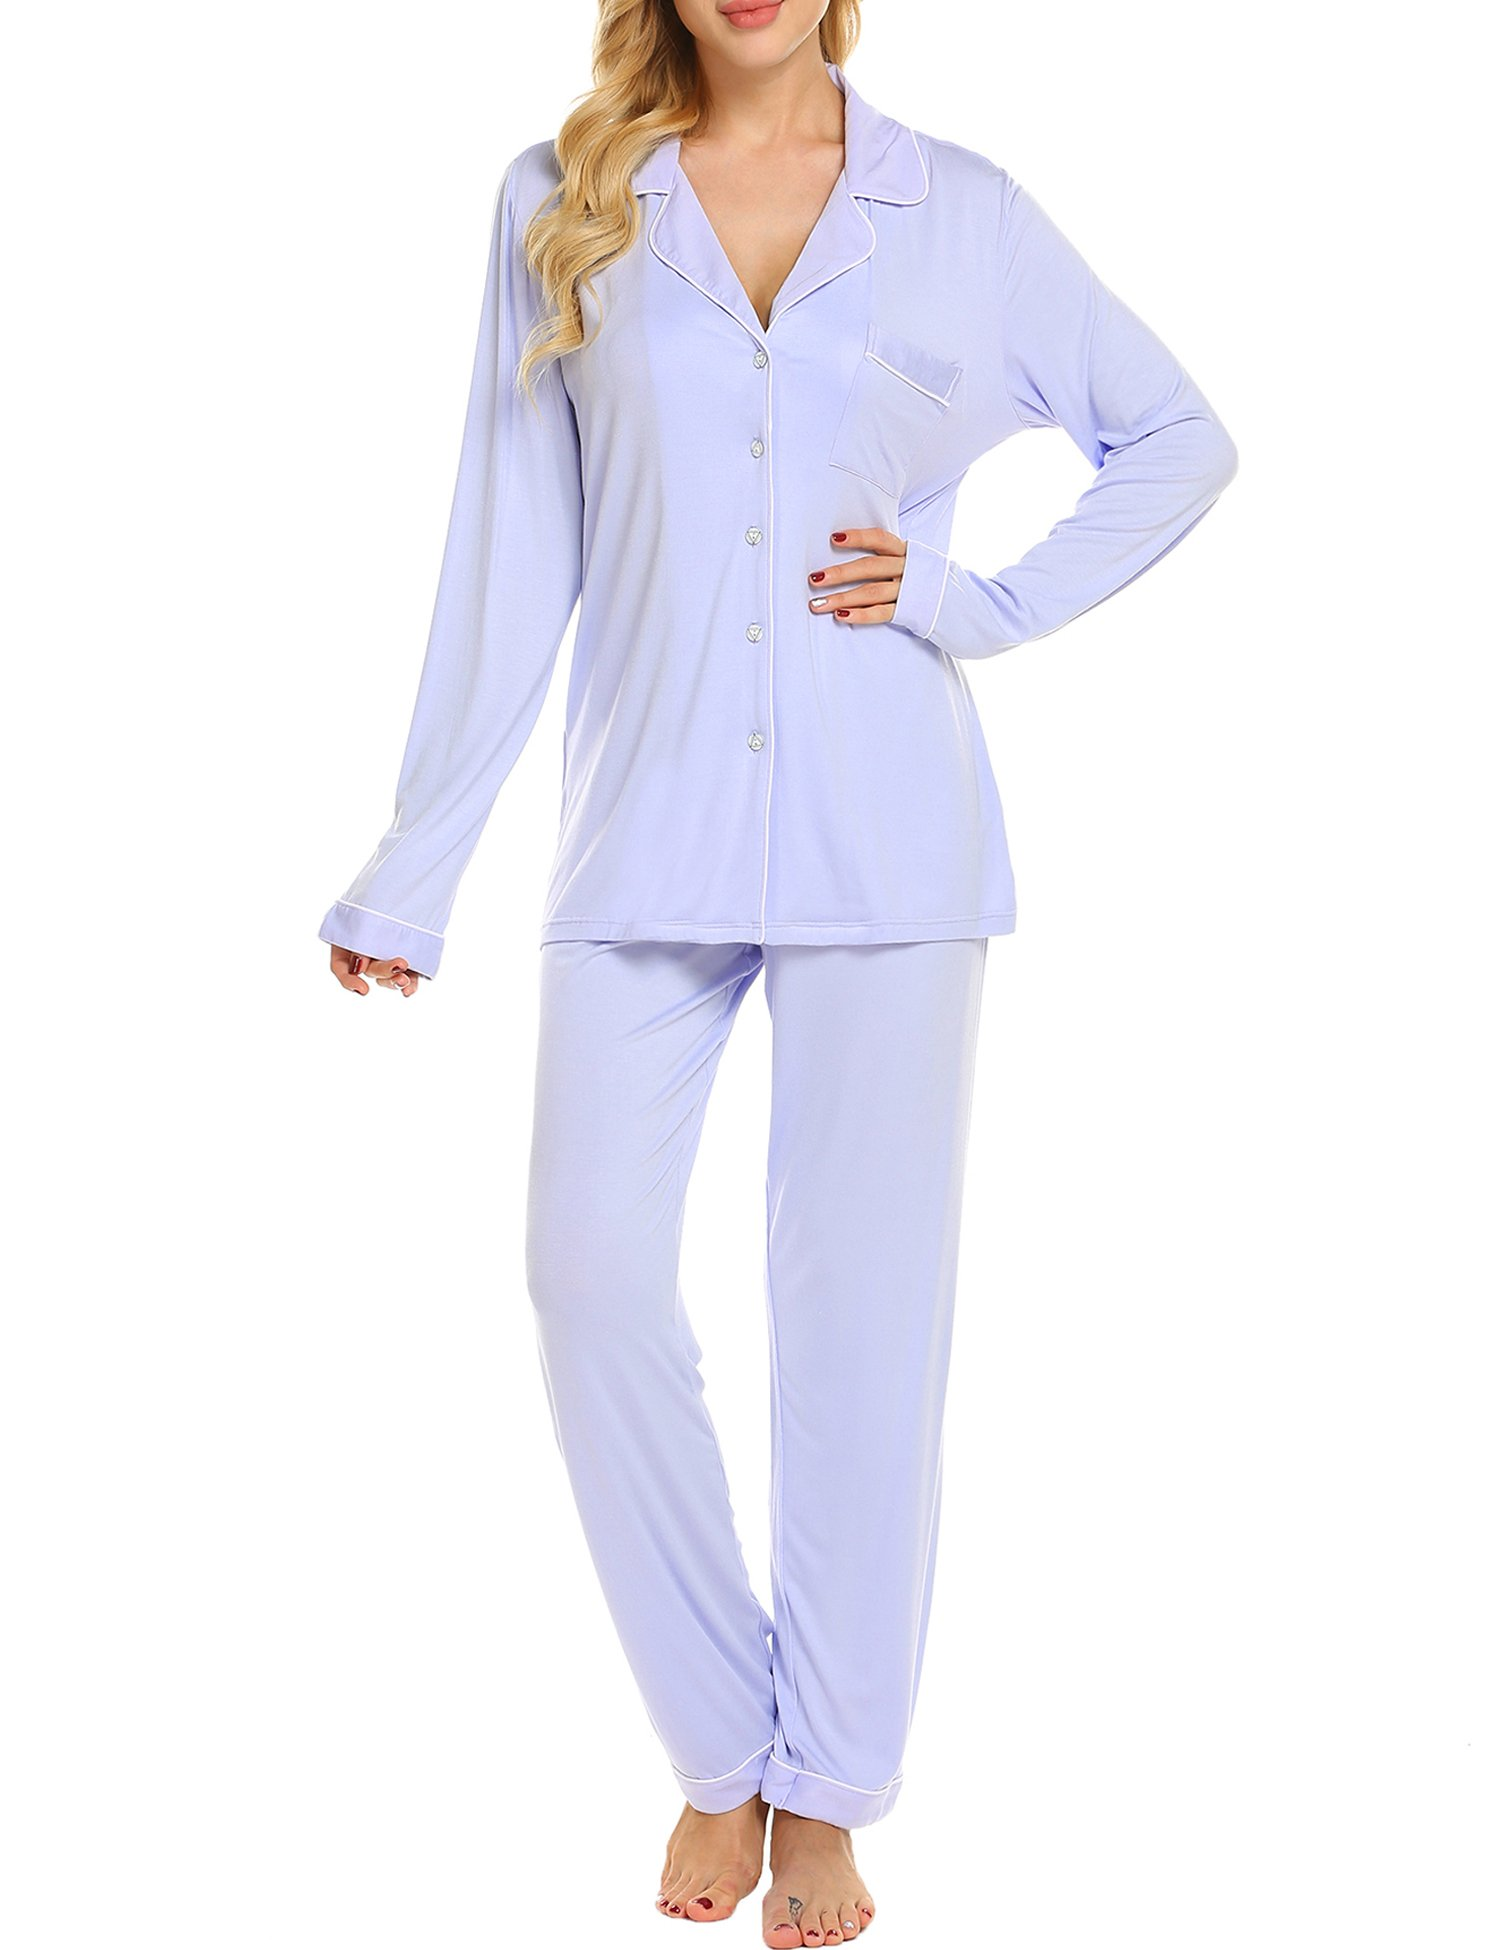 Ekouaer Pj Set Women's Soft Sleepwear Long Sleeve Nightwear Set (Violet Ash,L)